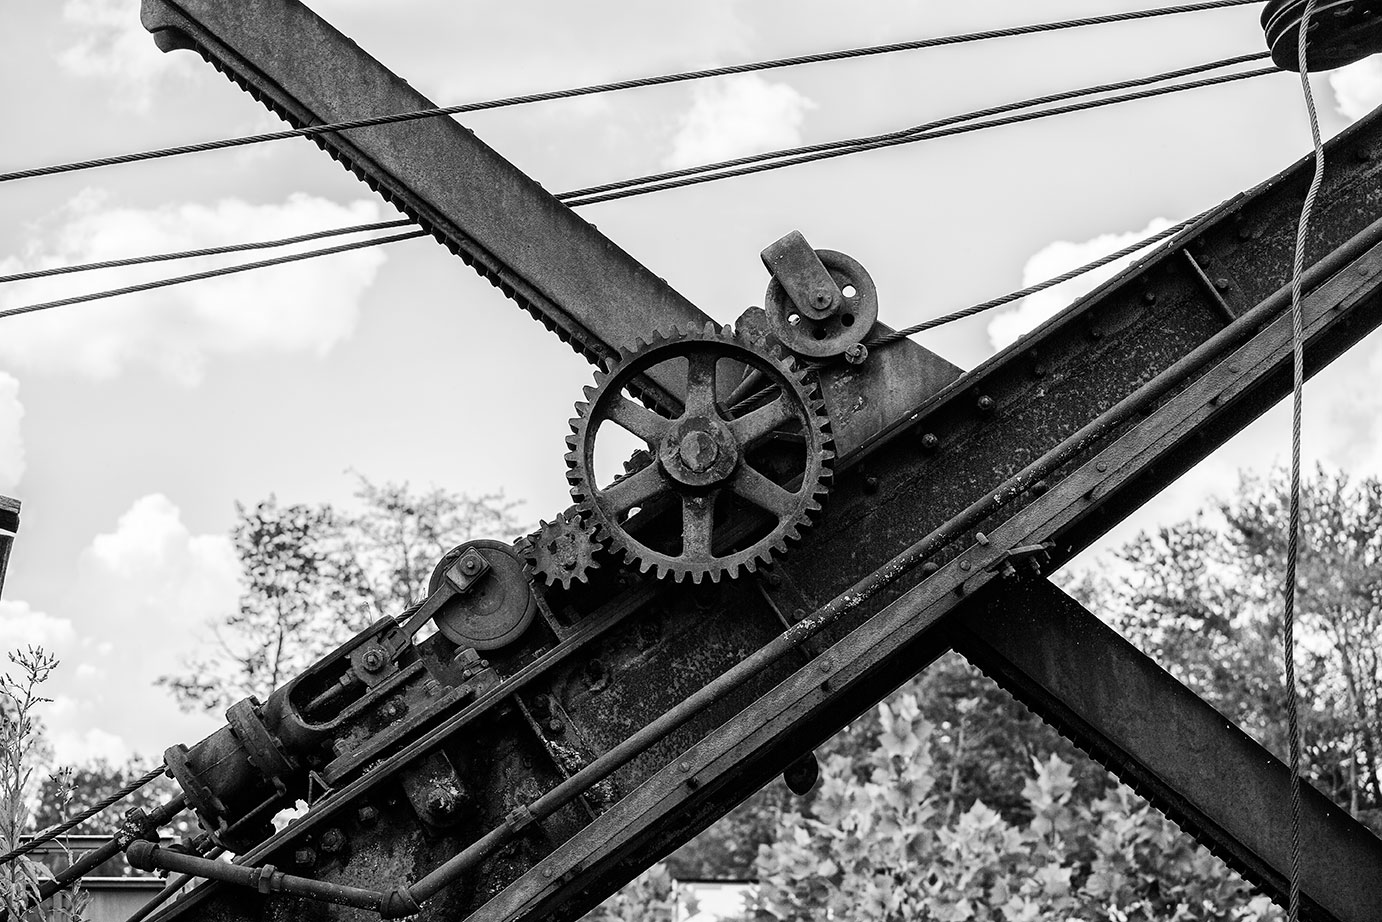 The rails and gears of a rusty steam shovel, found abandoned in a rural pasture.